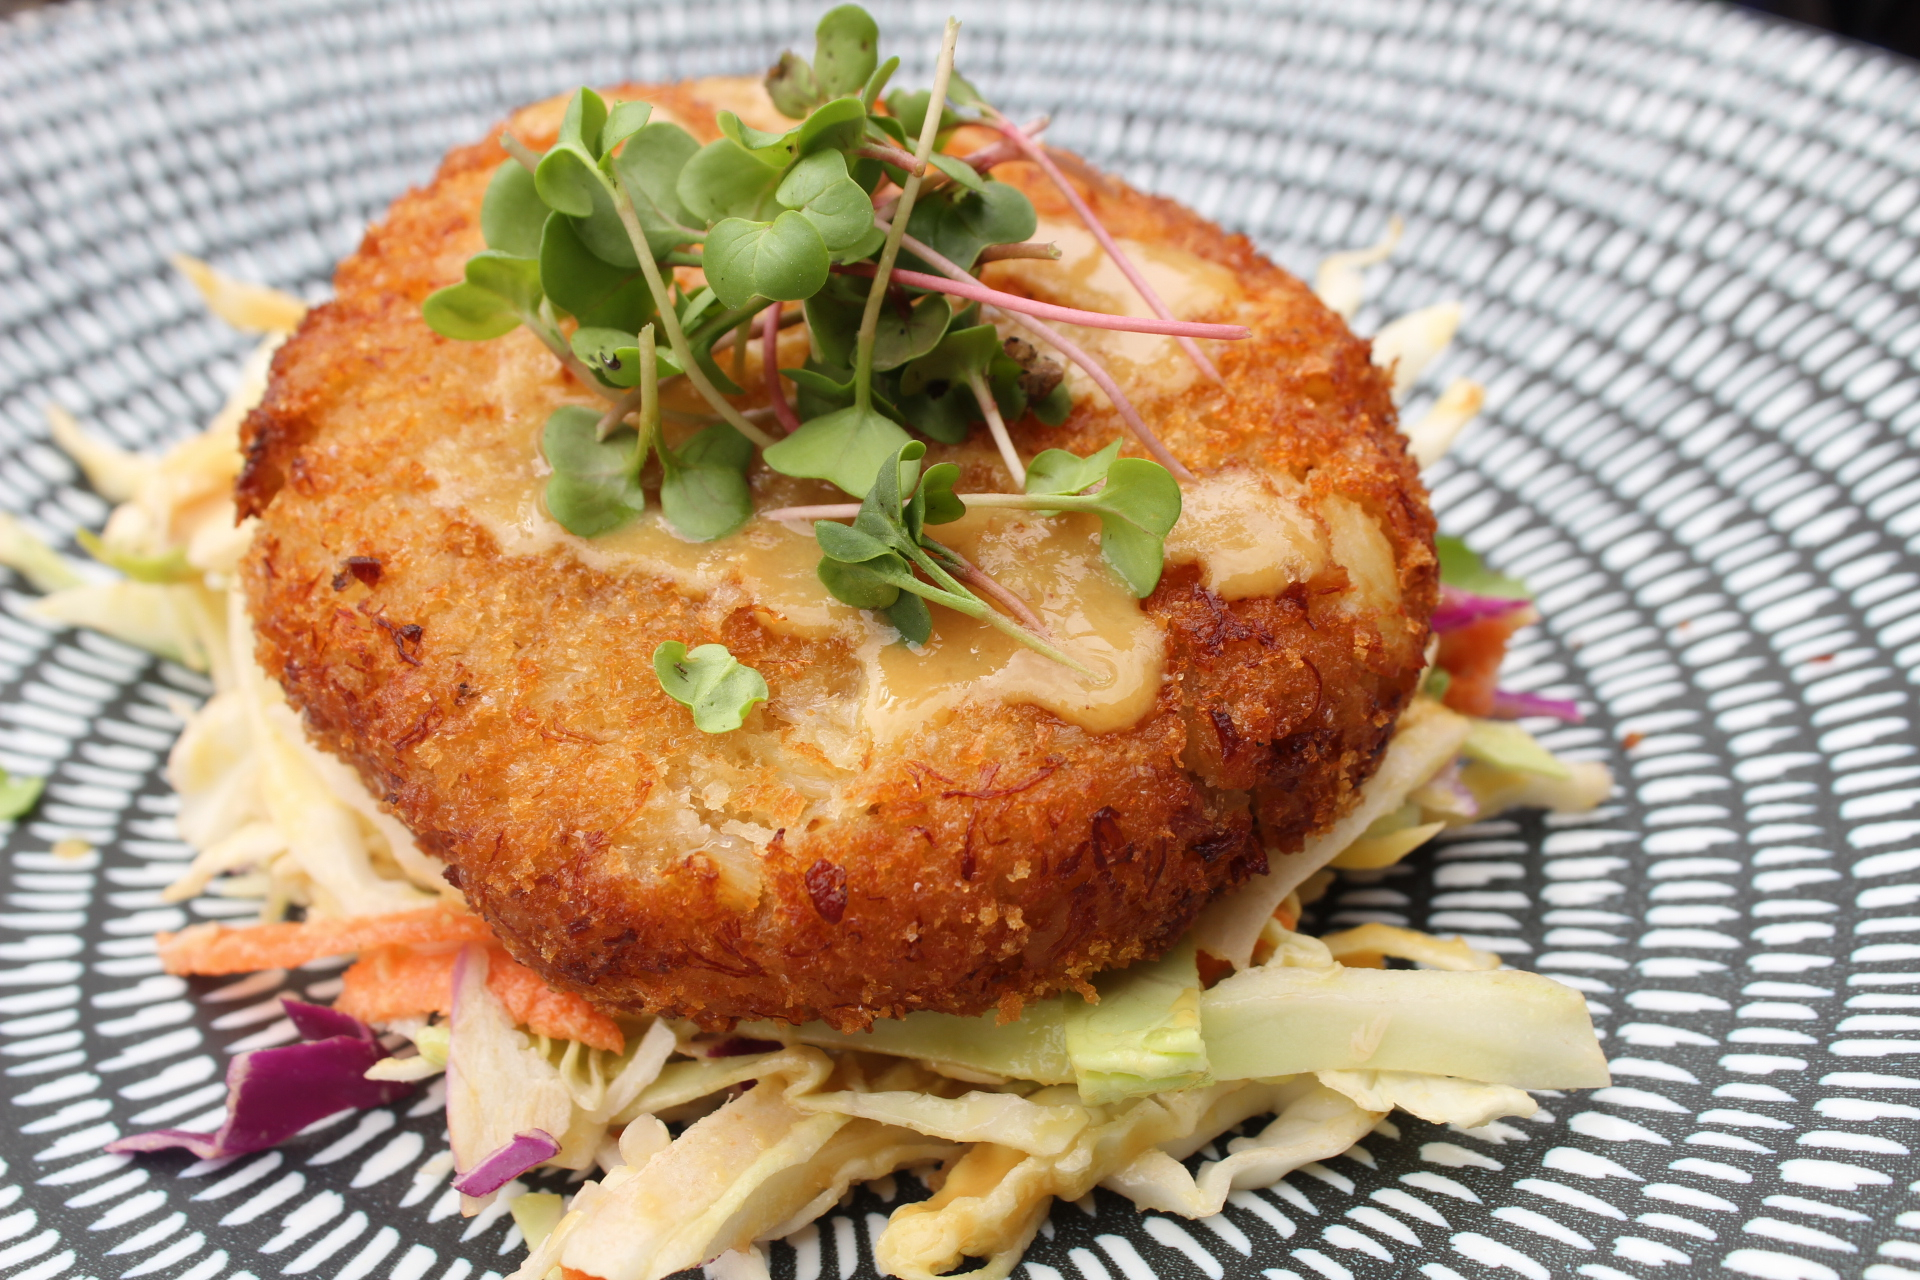 Crab Cake on top of slaw on a plate